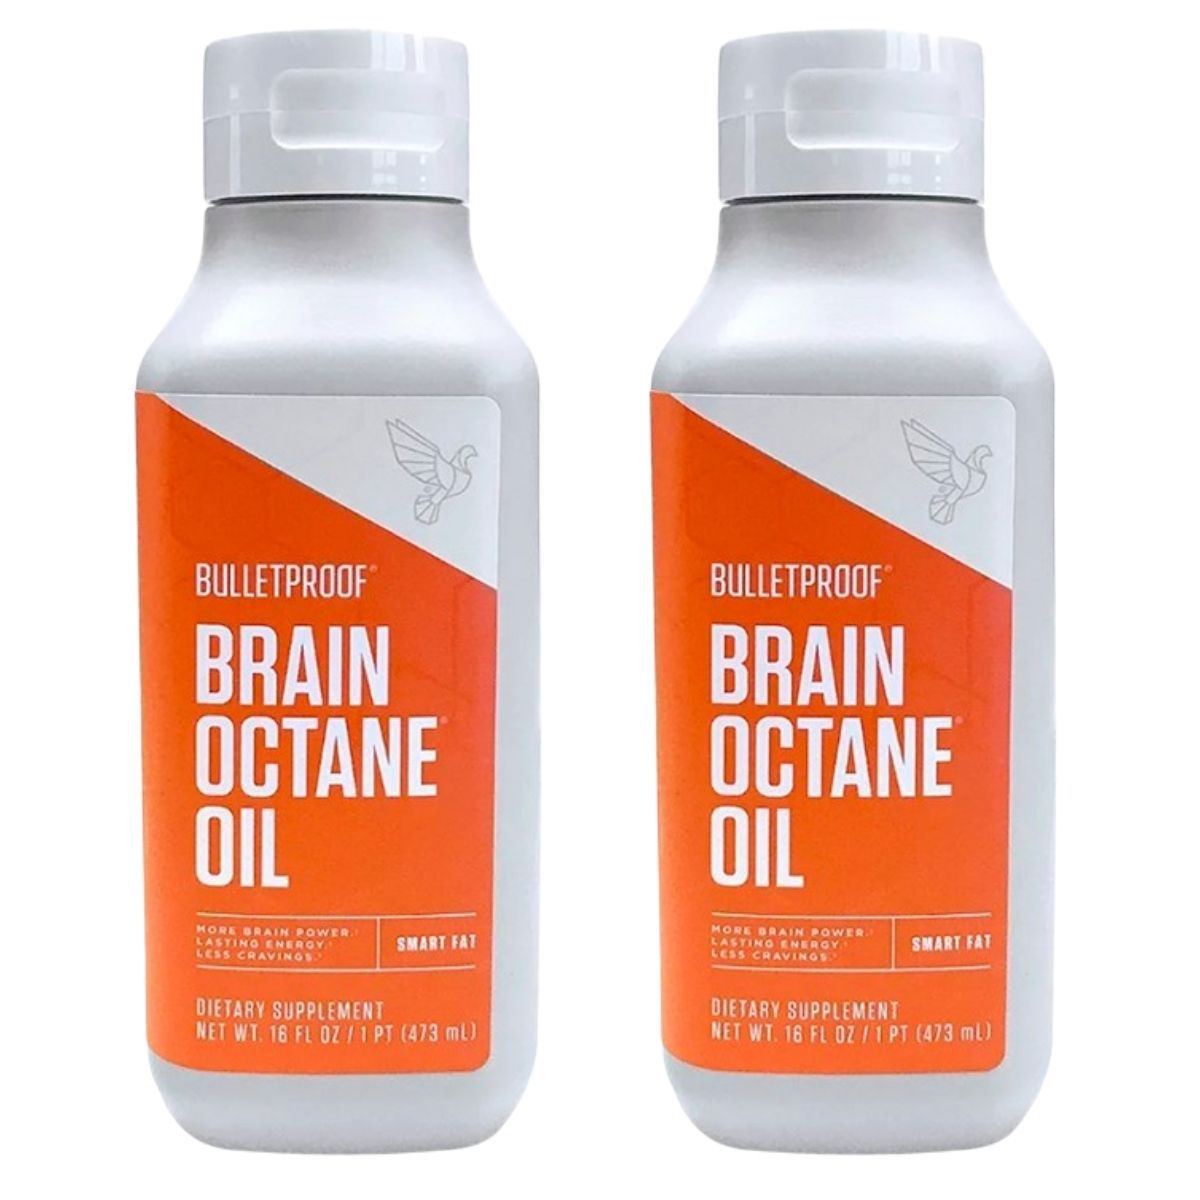 Kit 2 MCT Brain Octane Oil 473ml BulletProof - Óleo de Coco Concentrado